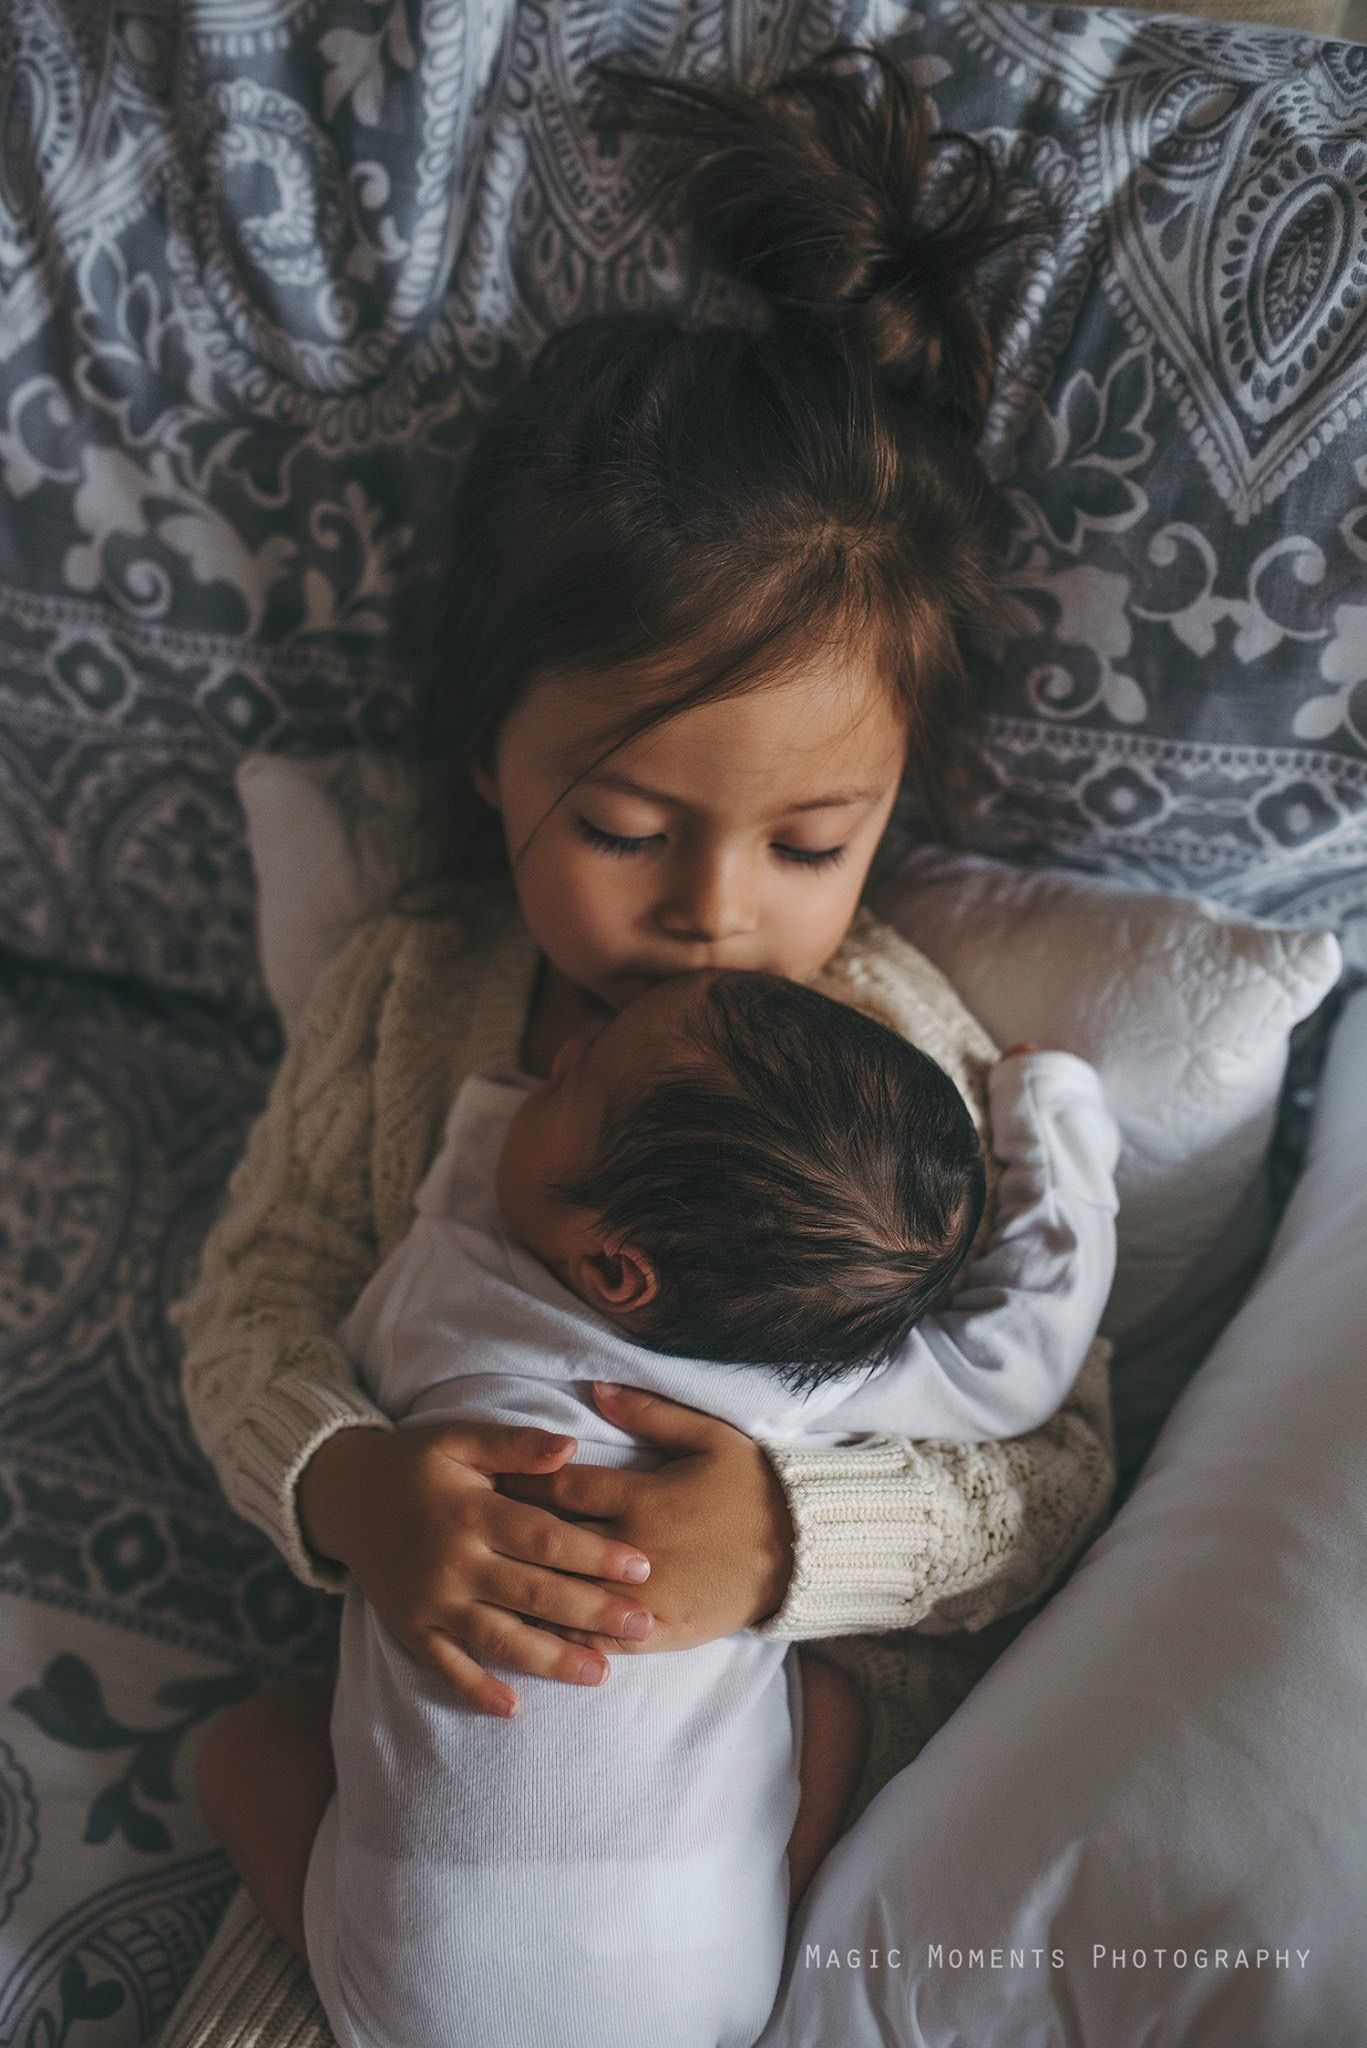 Sibling Photography Newborn Holding Baby Love Family Ideas Shots